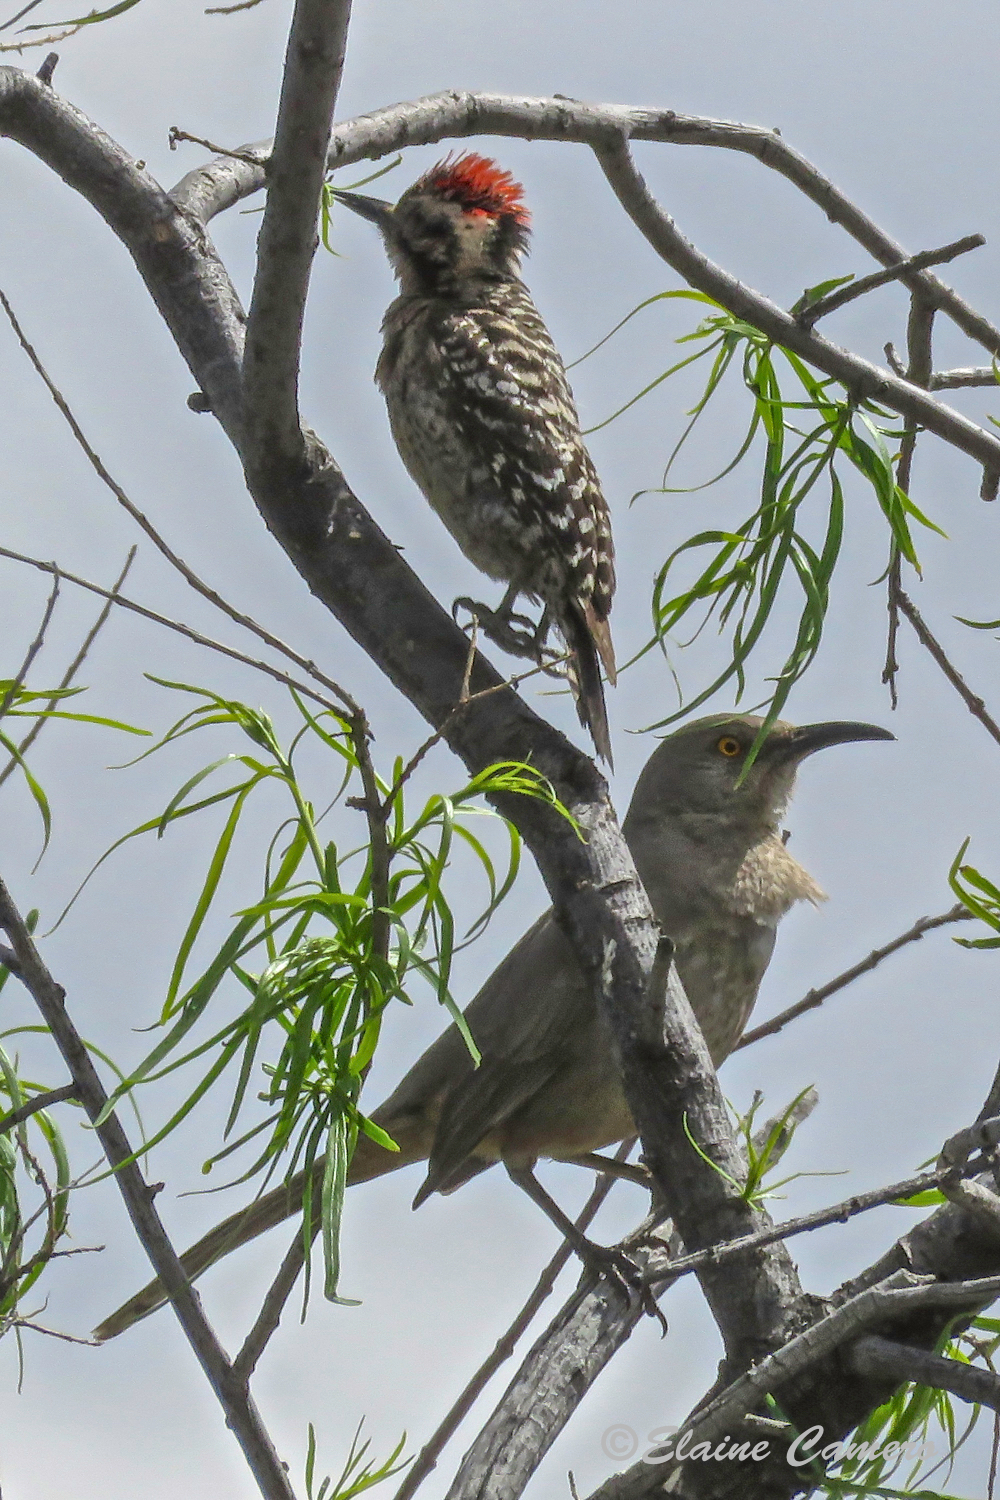 The top bird is a Ladderback Woodpecker and the lower one is a Crissal Thrasher.